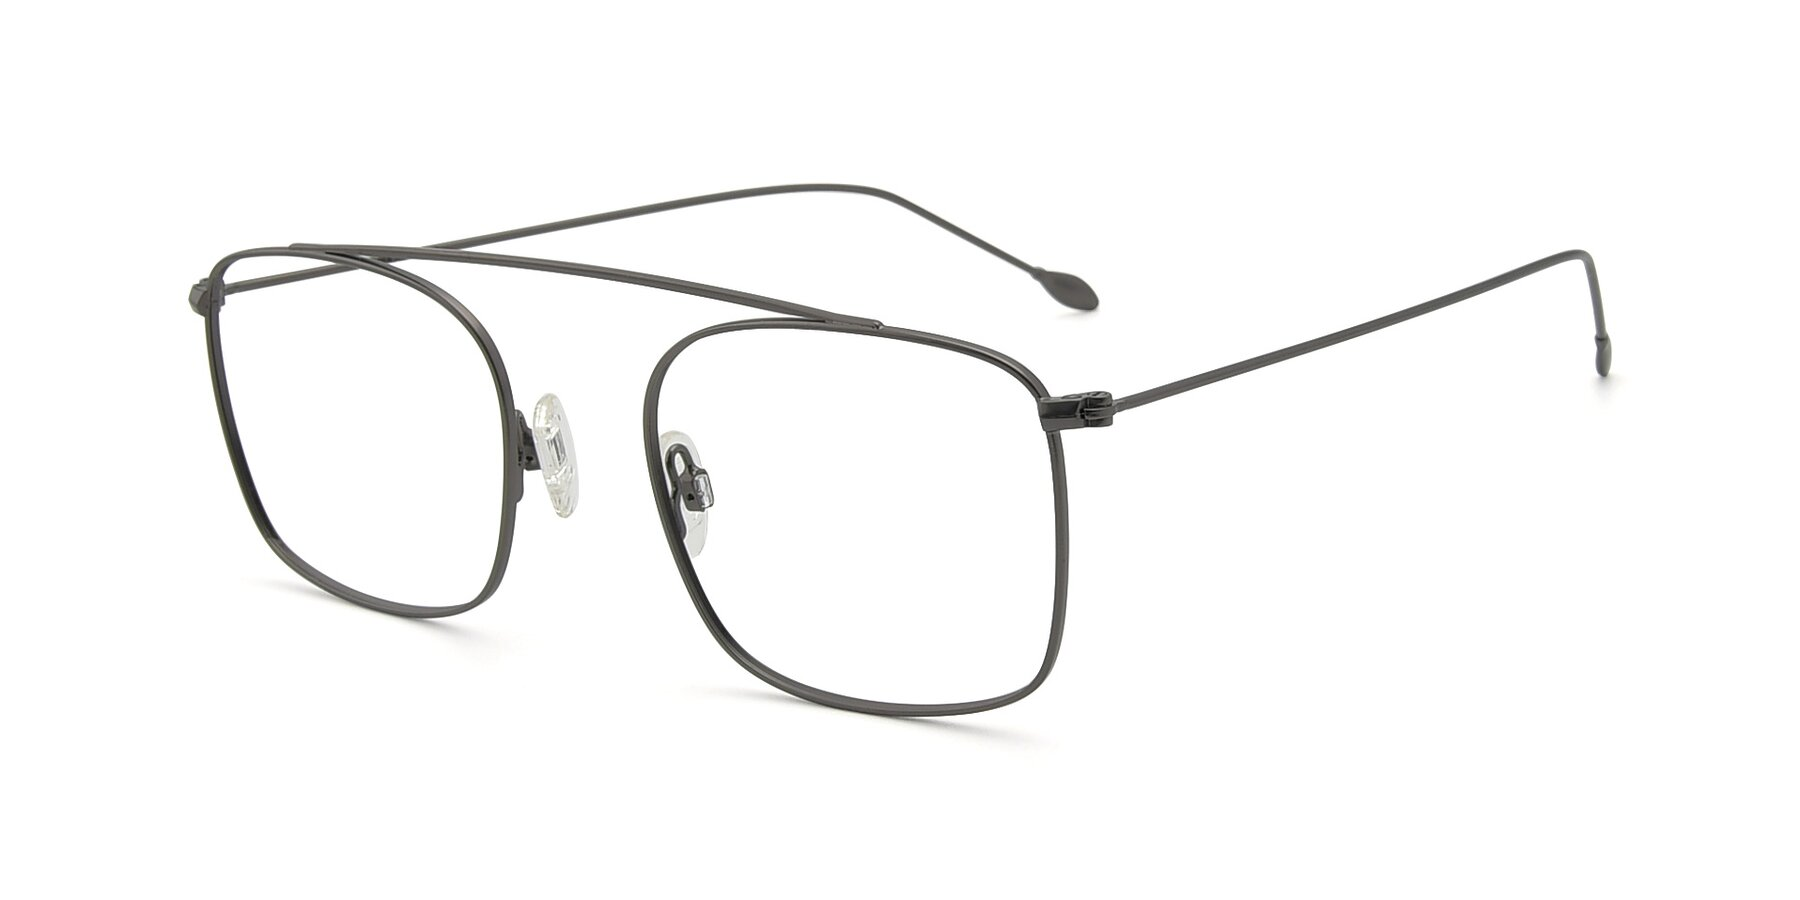 Angle of The Librarian in Gunmetal with Clear Blue Light Blocking Lenses